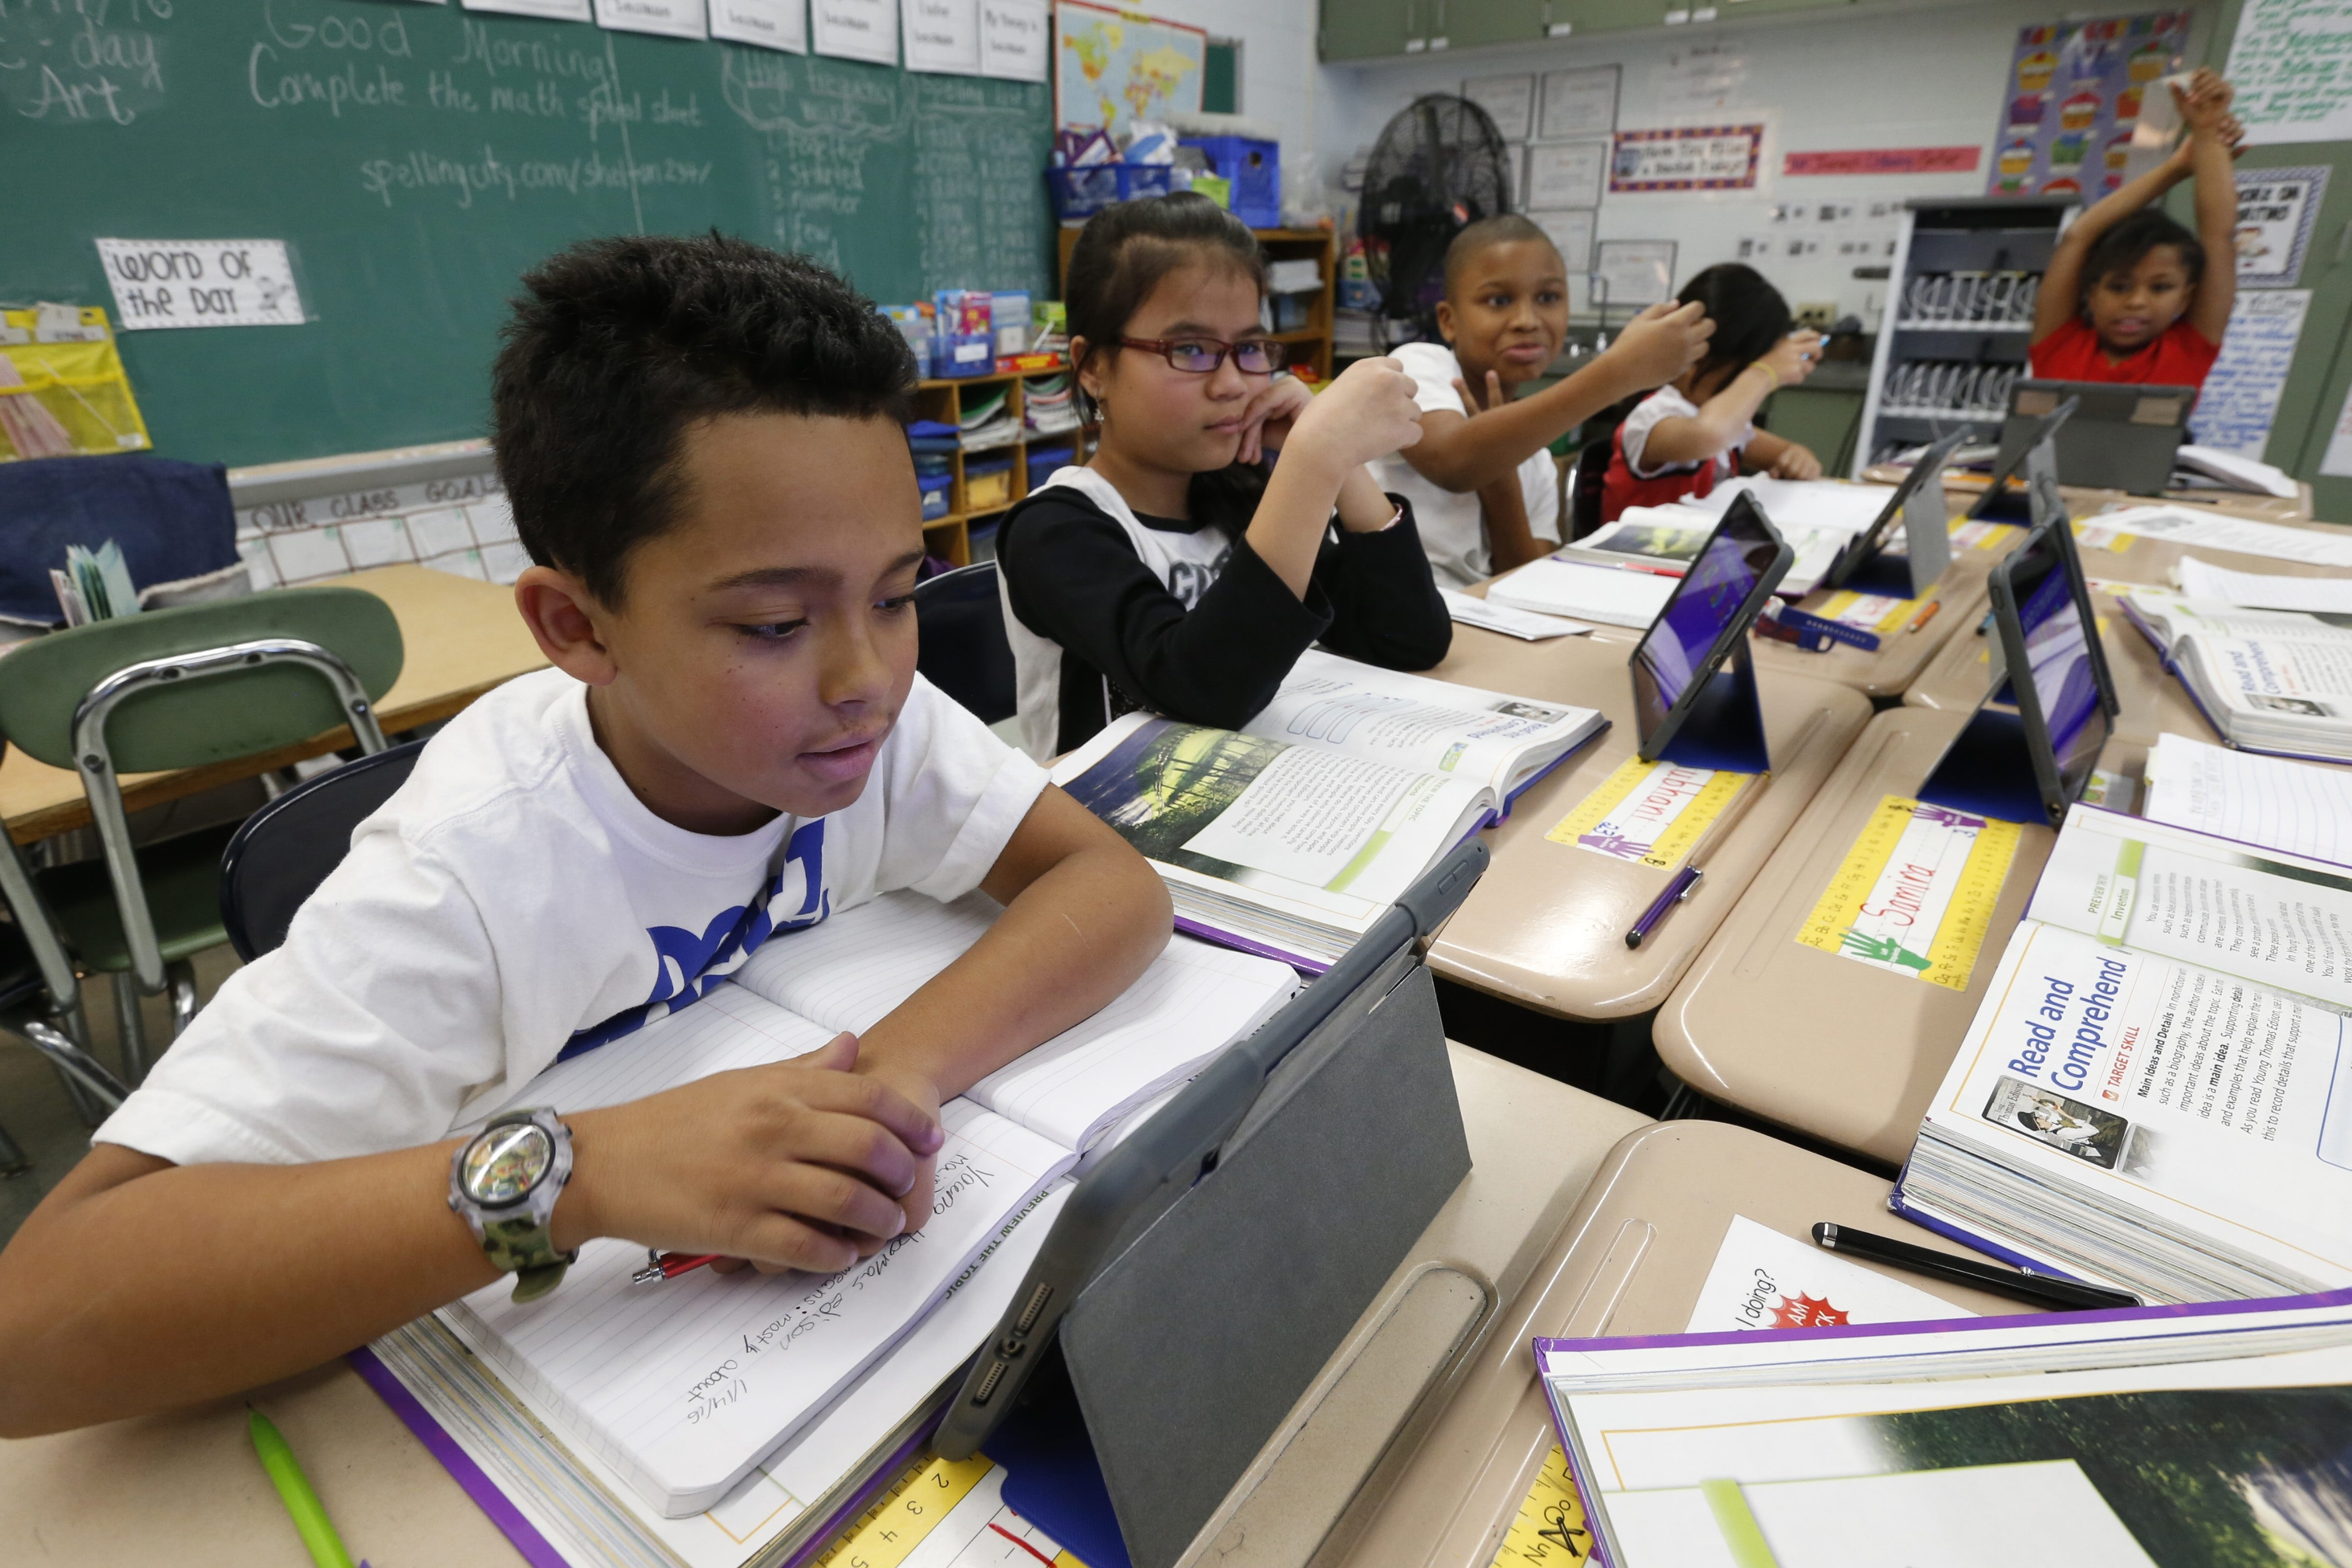 Third graders at Buffalo Elementary School of Technology, including Michael Mingle, left, work with their iPads during class last month.